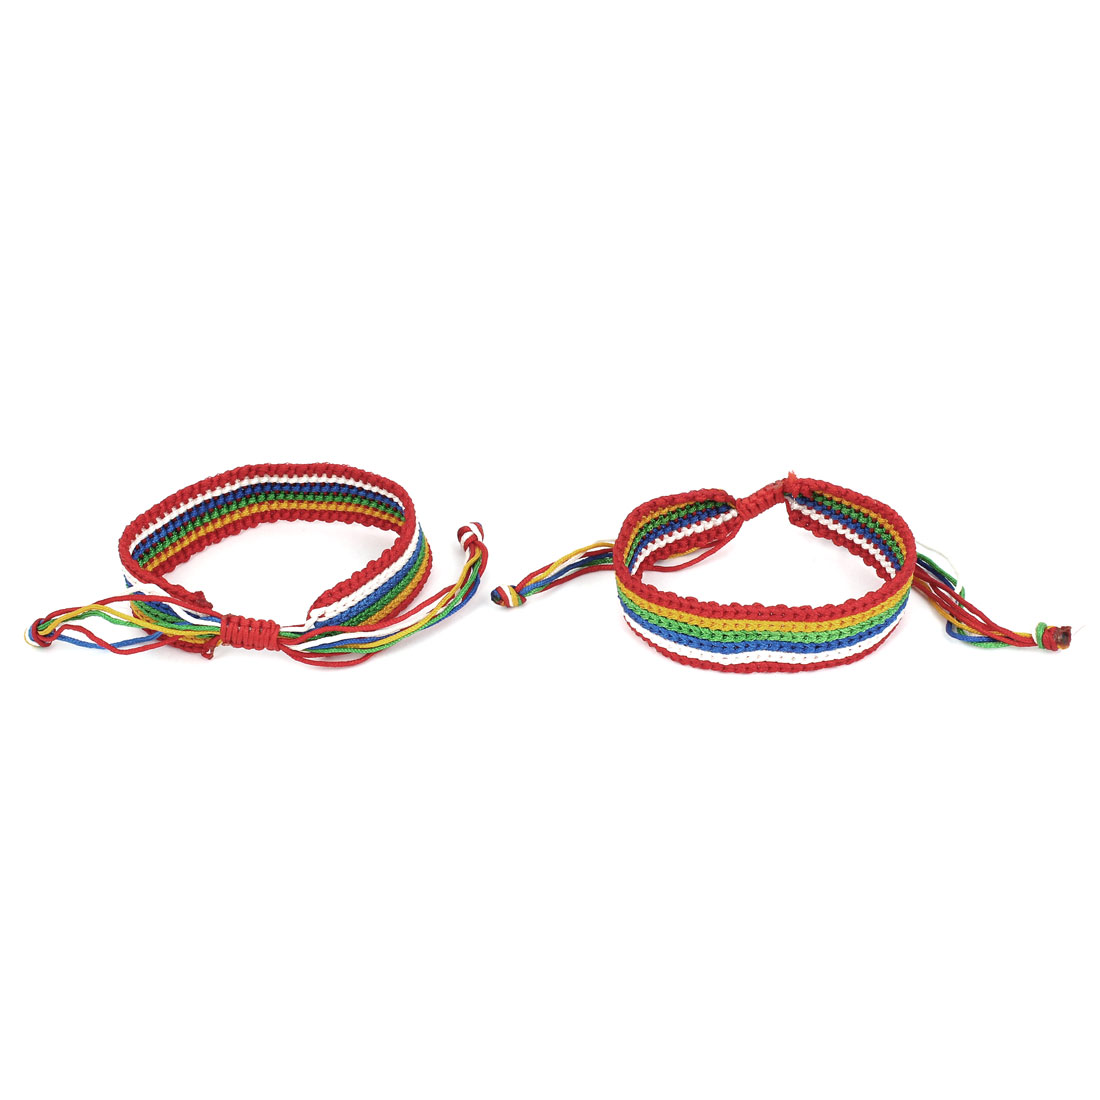 2 Pcs Multicolor Adjustable Knotted Braided Hand Rope Woven Bracelet for Ladies